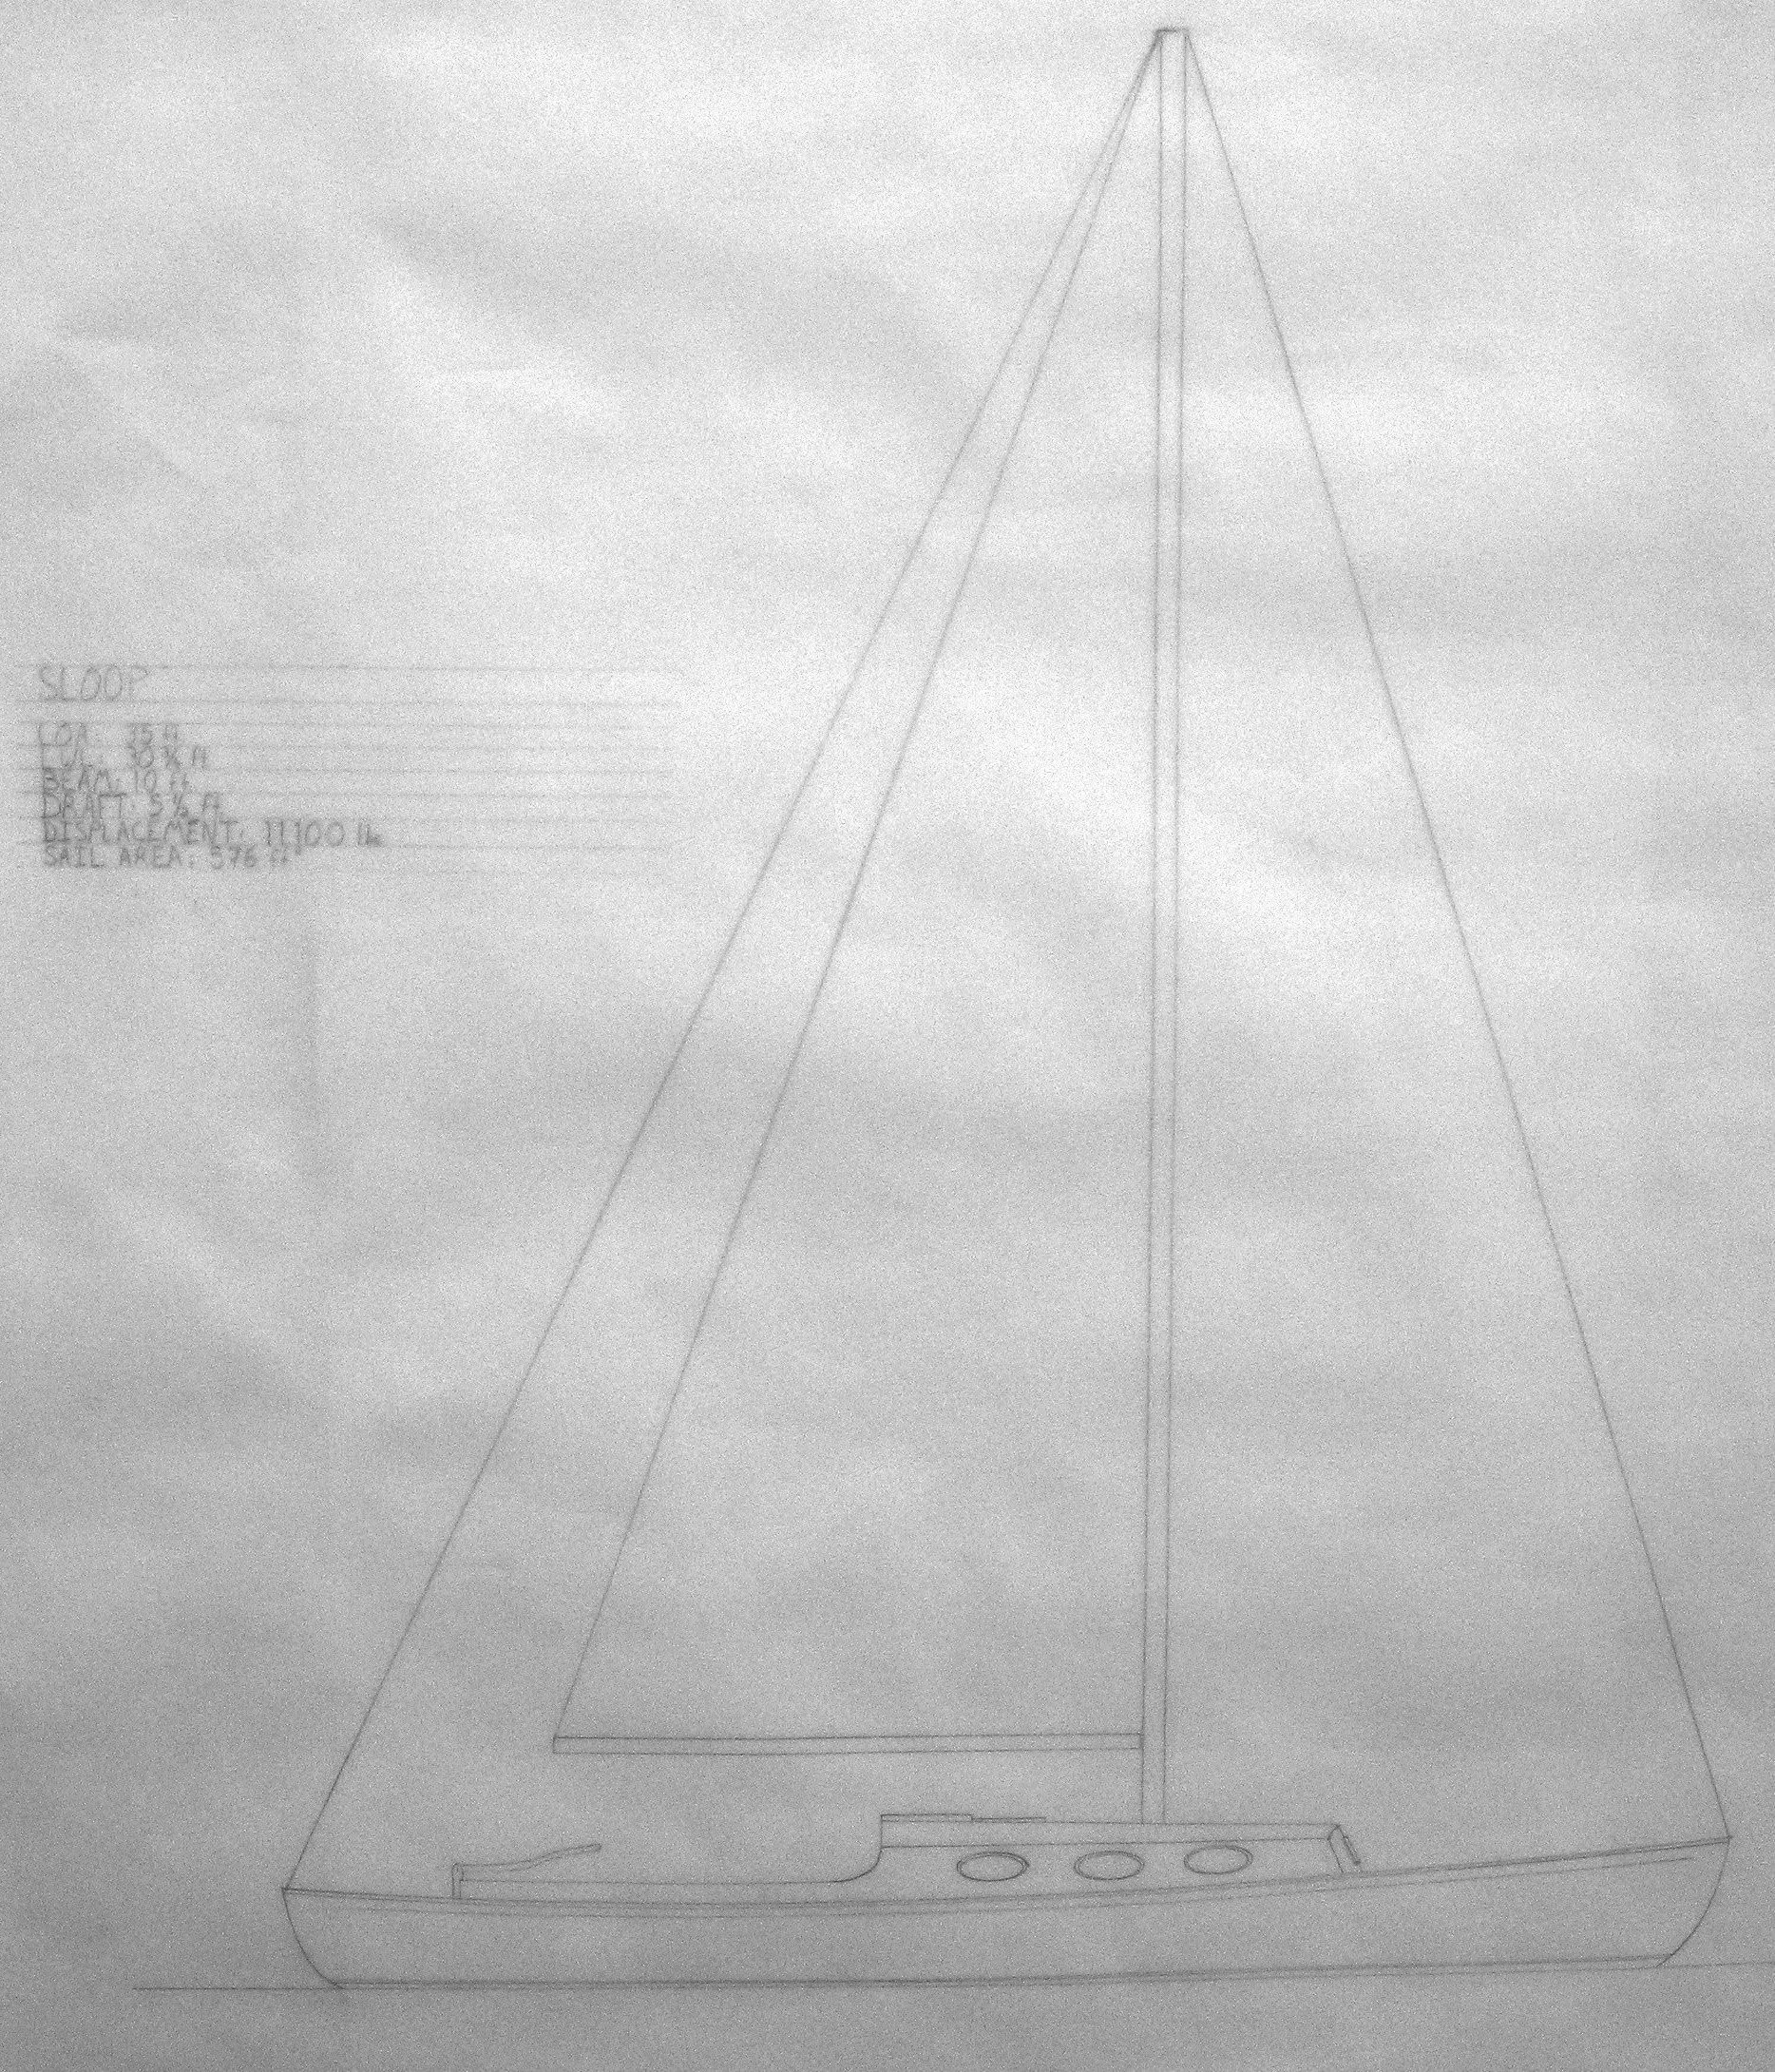 Sloop LiLo, in profile